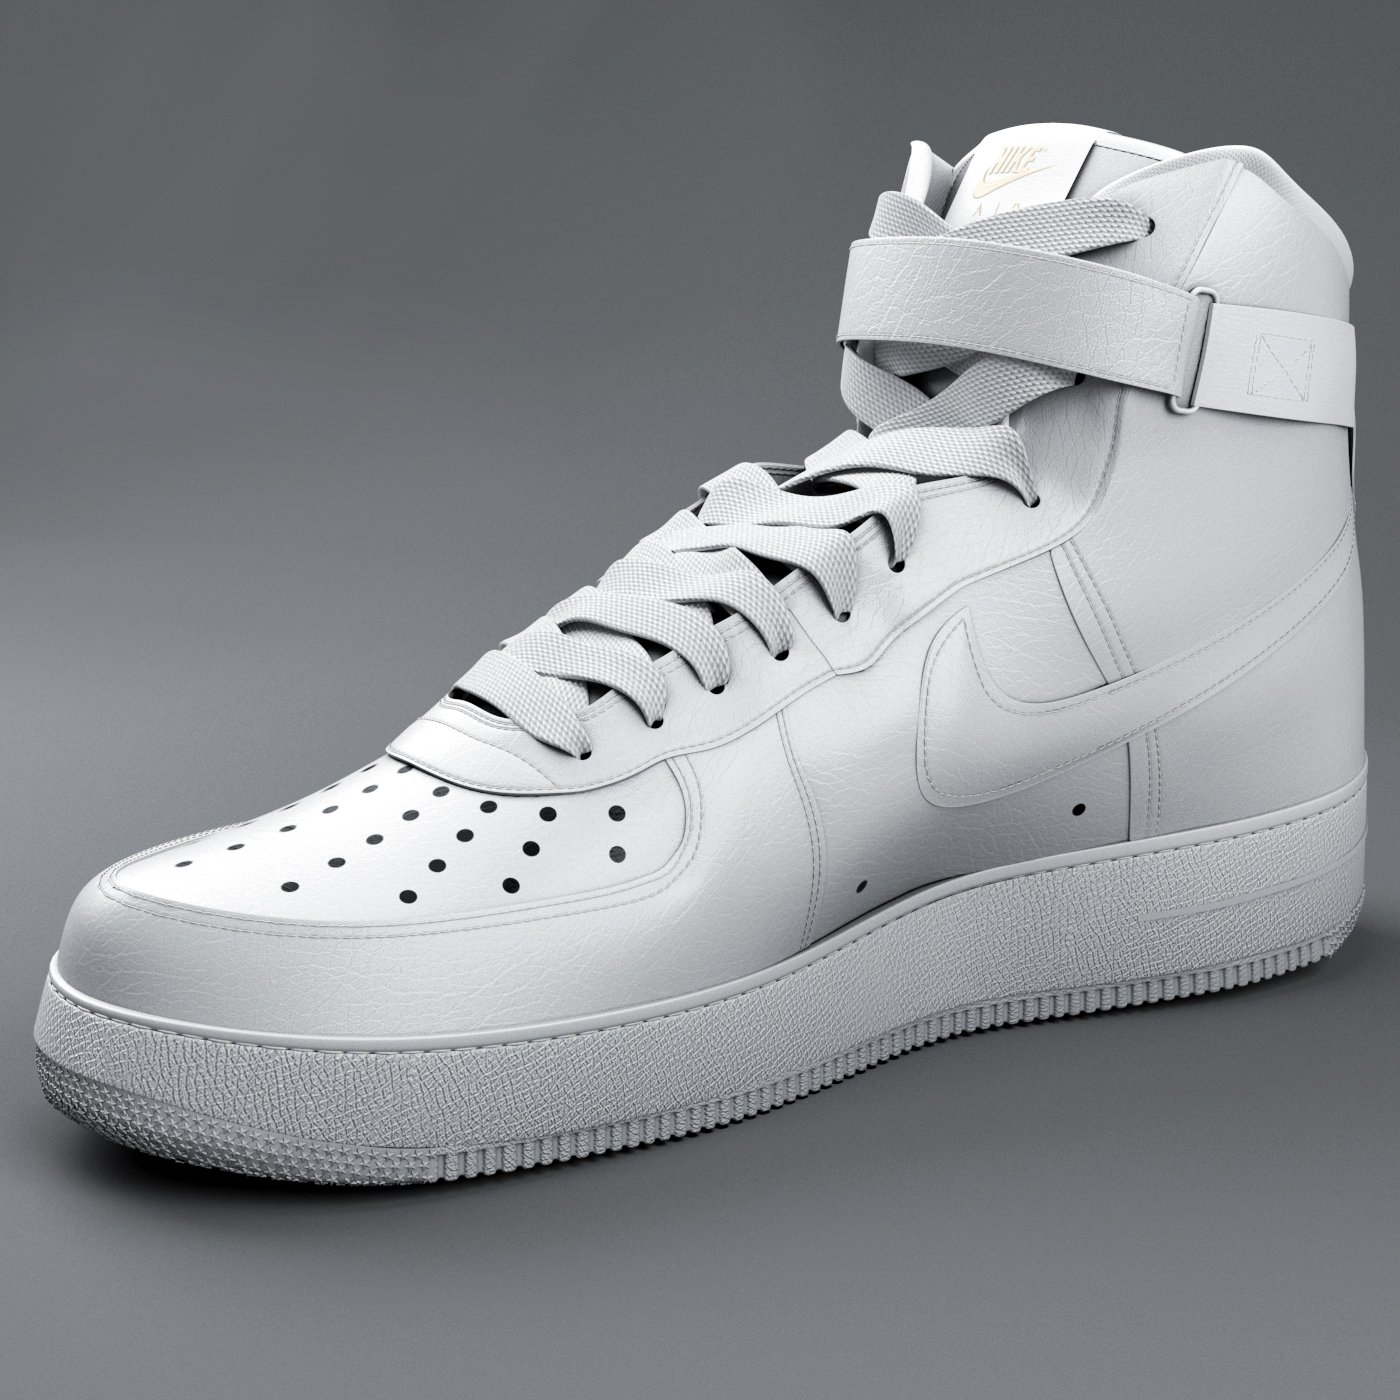 30123640 Nike Air Force 01 3D Model in Clothing 3DExport